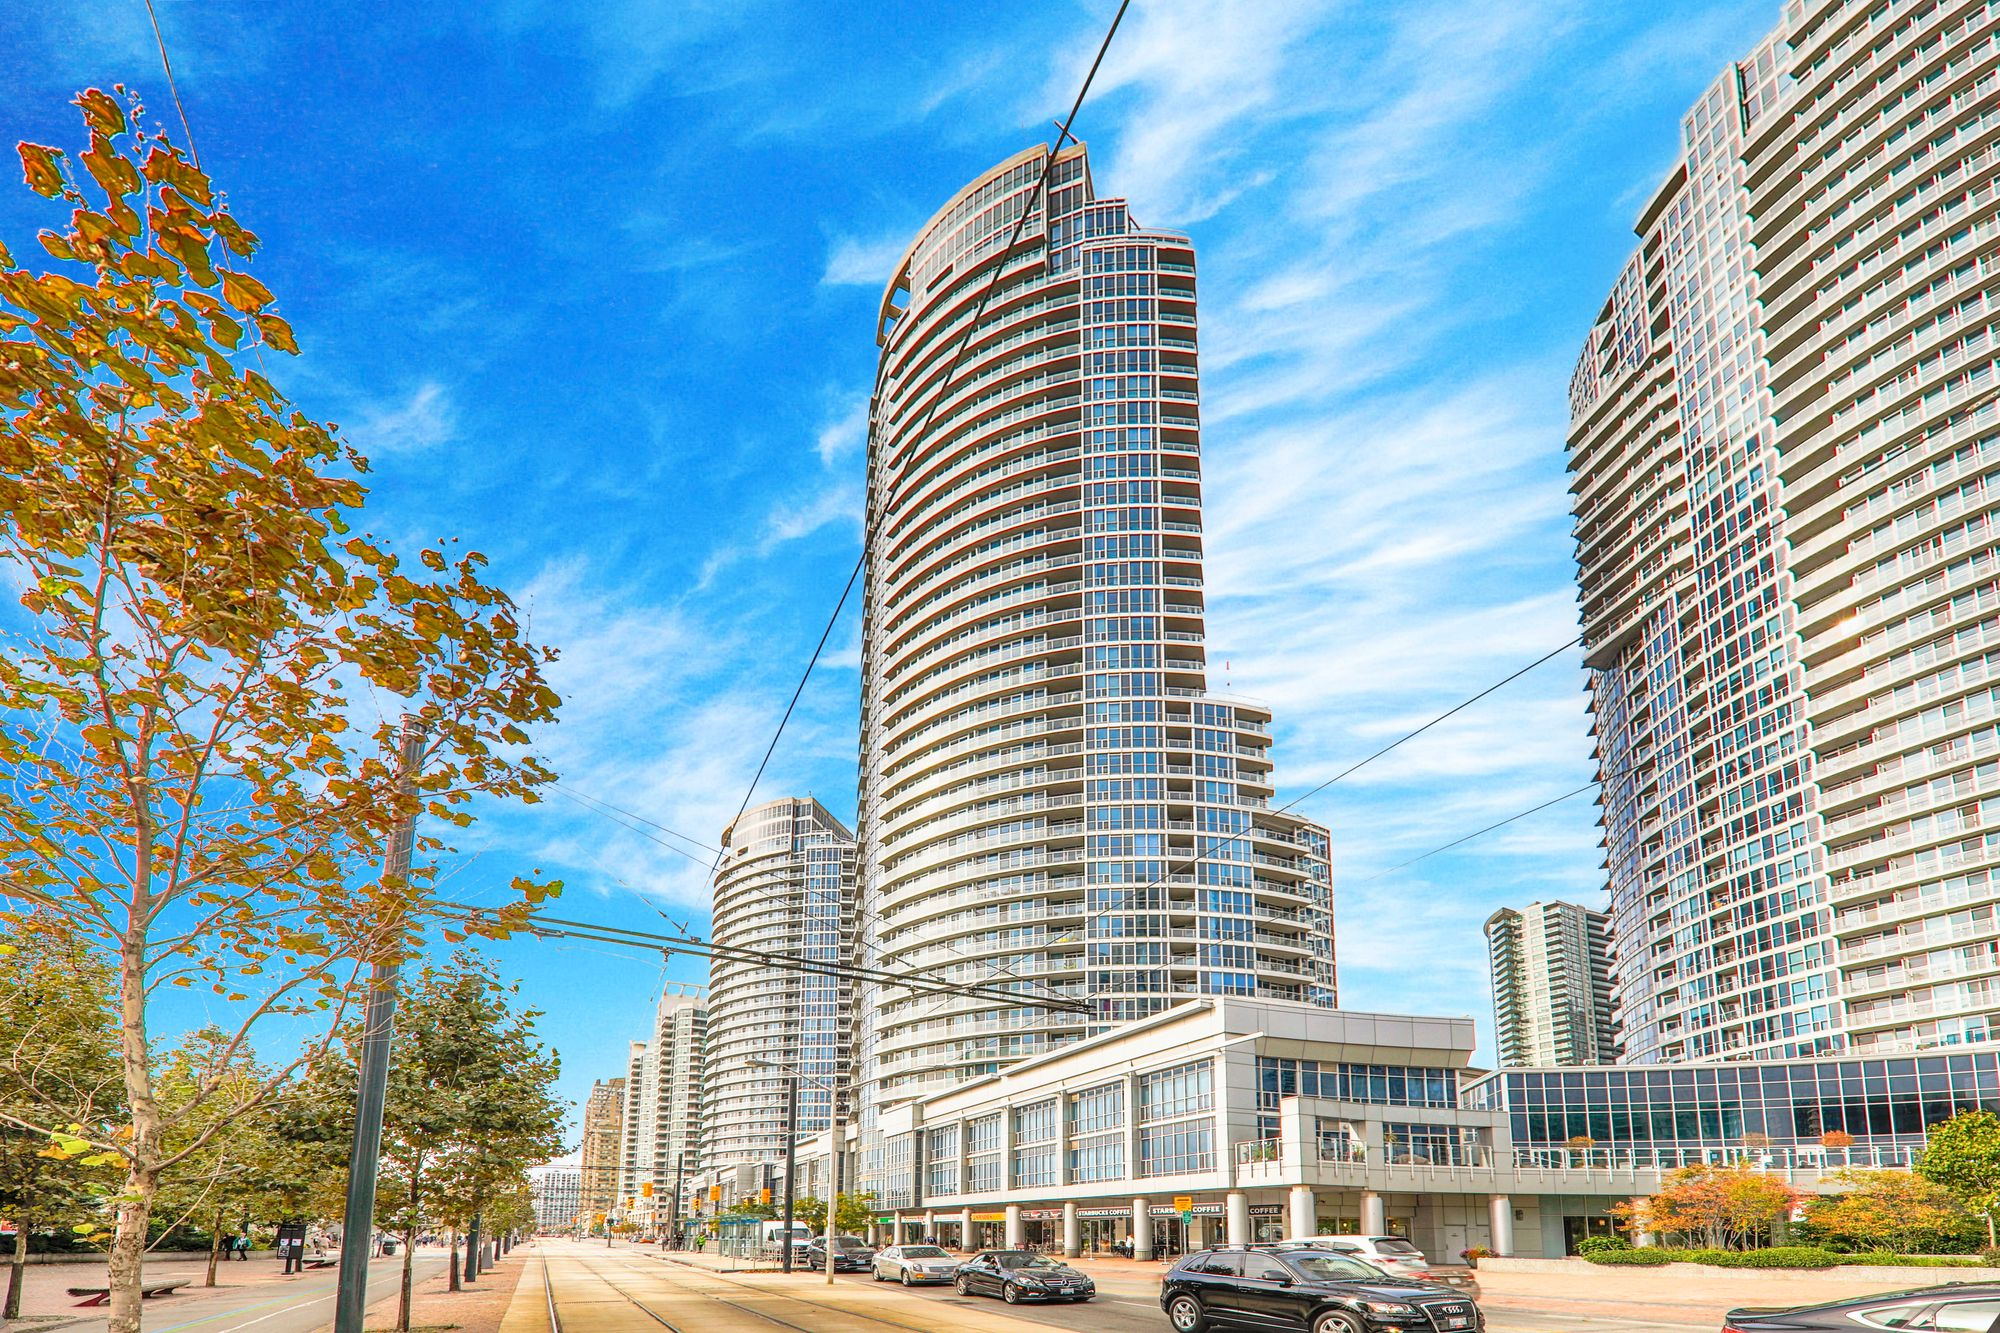 218 Queens Quay W. This condo at Waterclub III Condos is located in  Downtown, Toronto - image #2 of 4 by Strata.ca